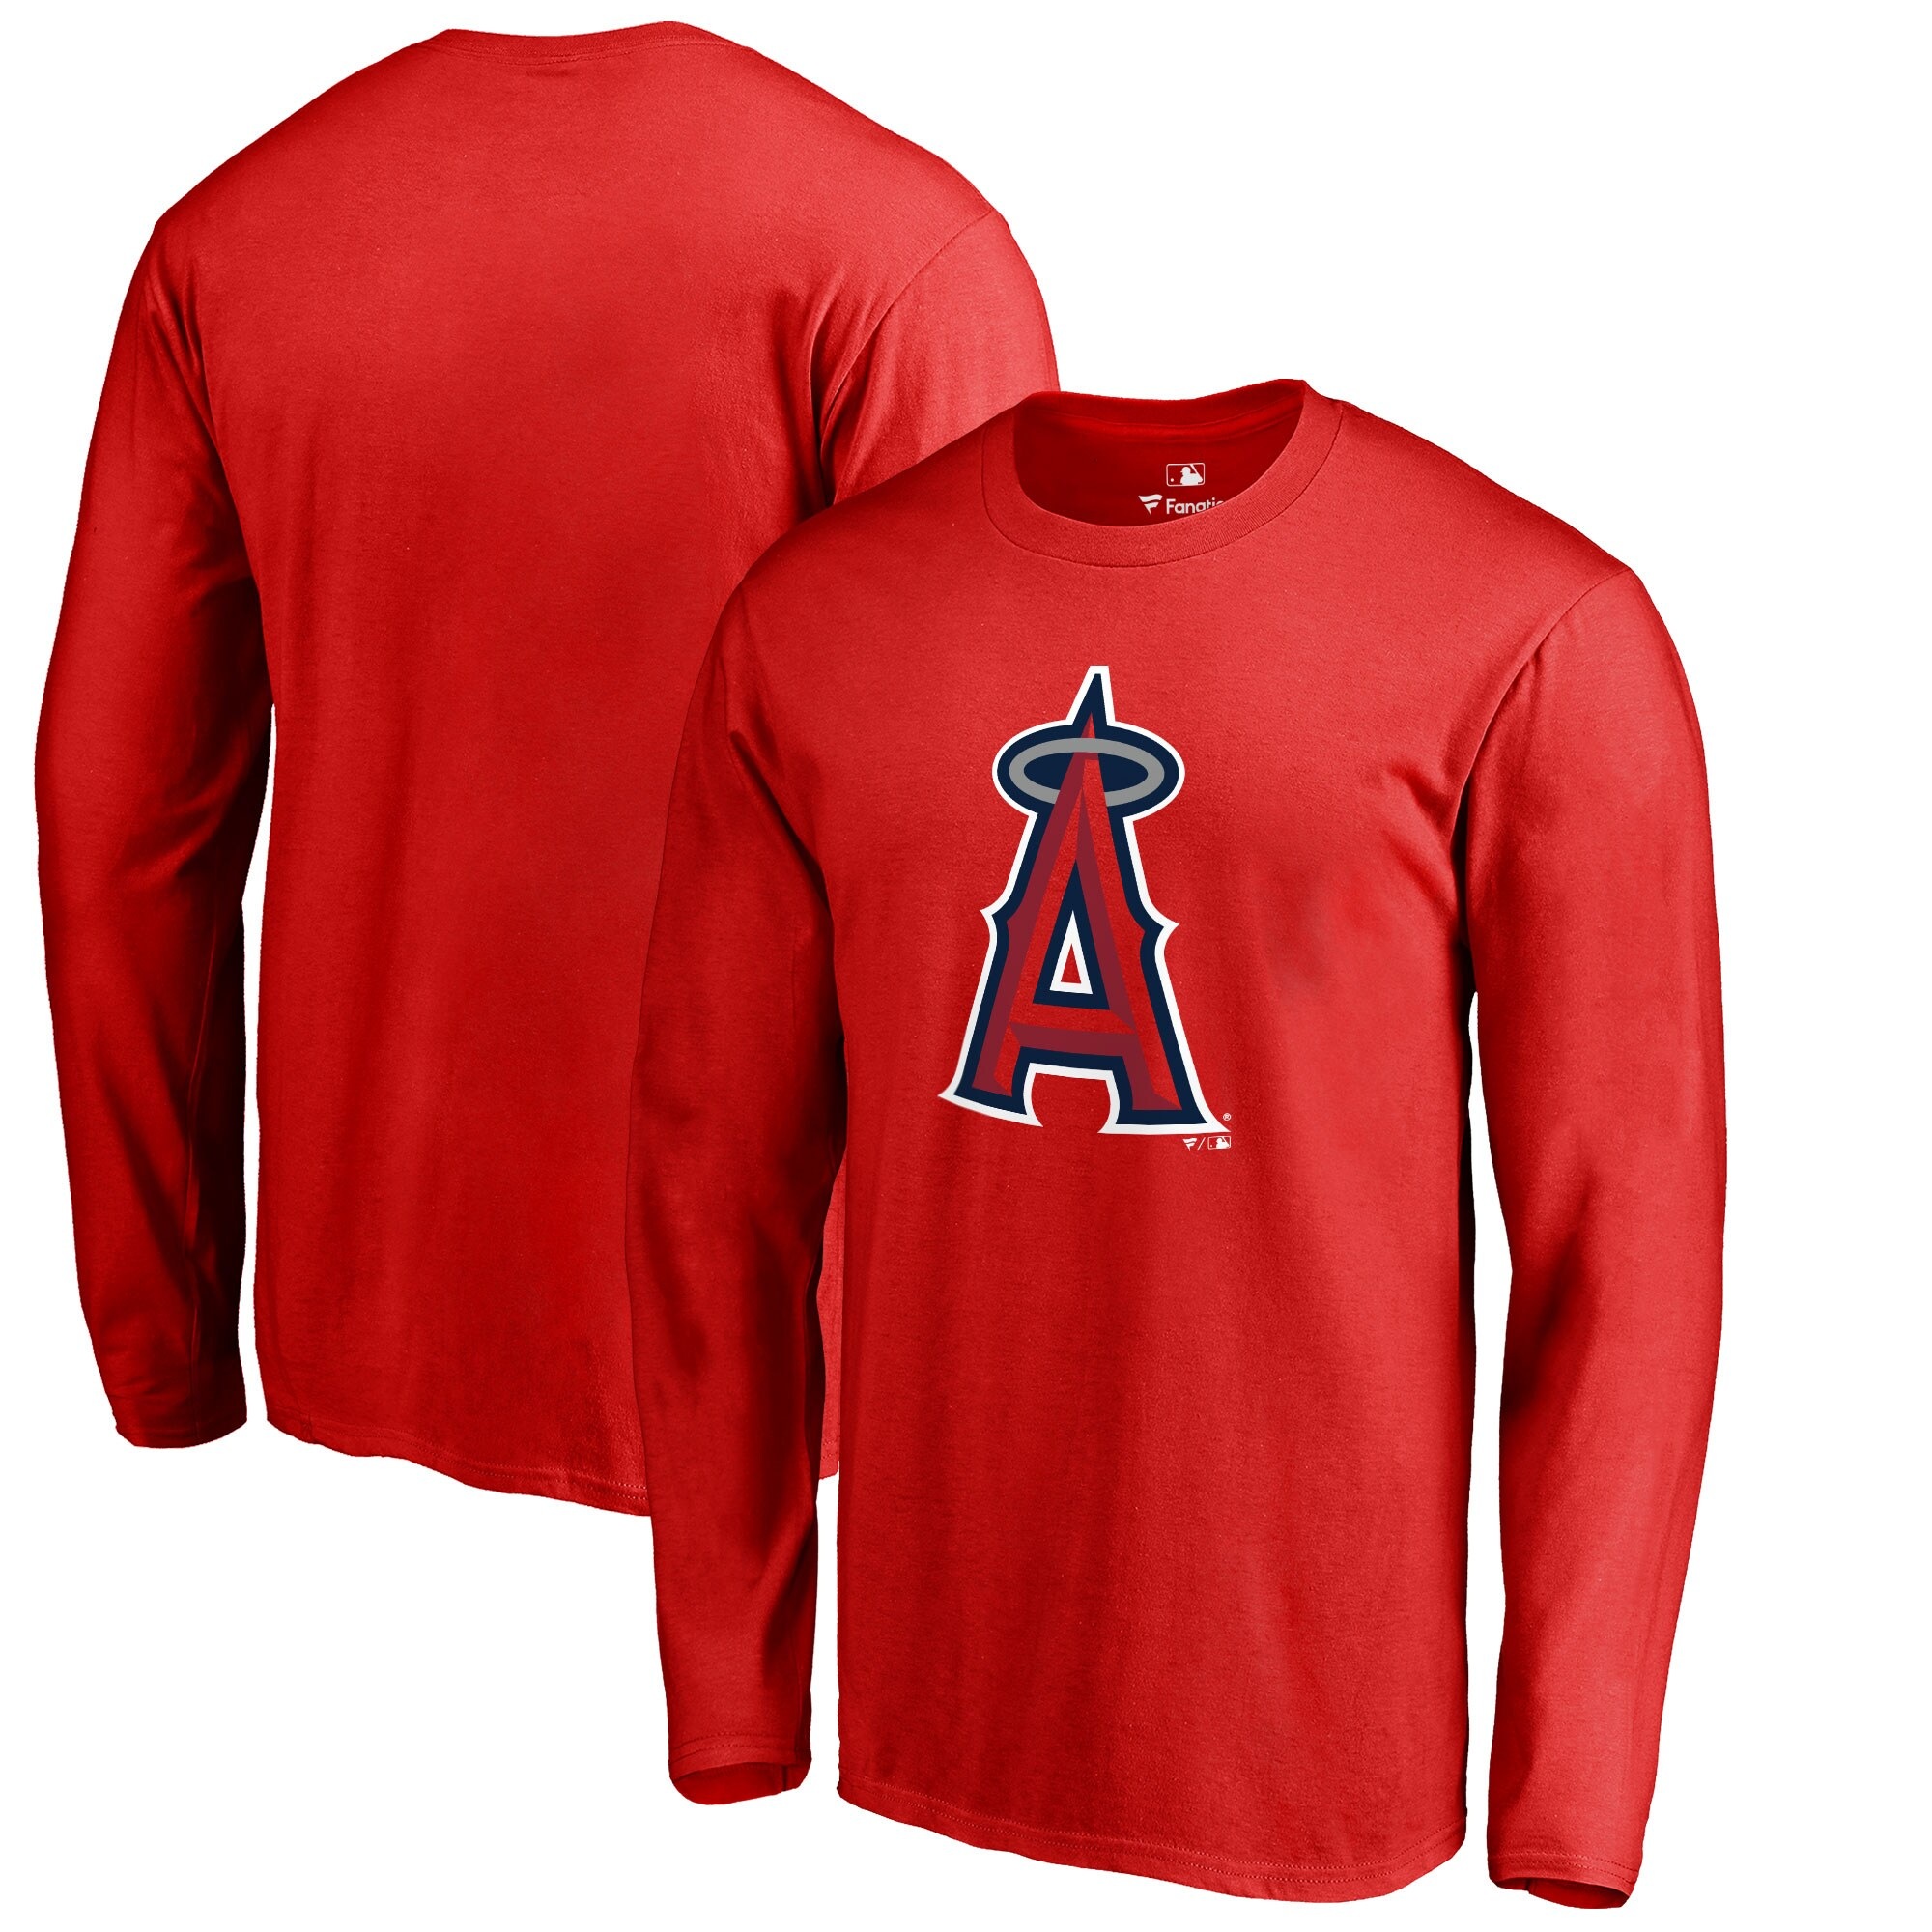 Los Angeles Angels Big & Tall Primary Team Logo Long Sleeve T-Shirt - Red